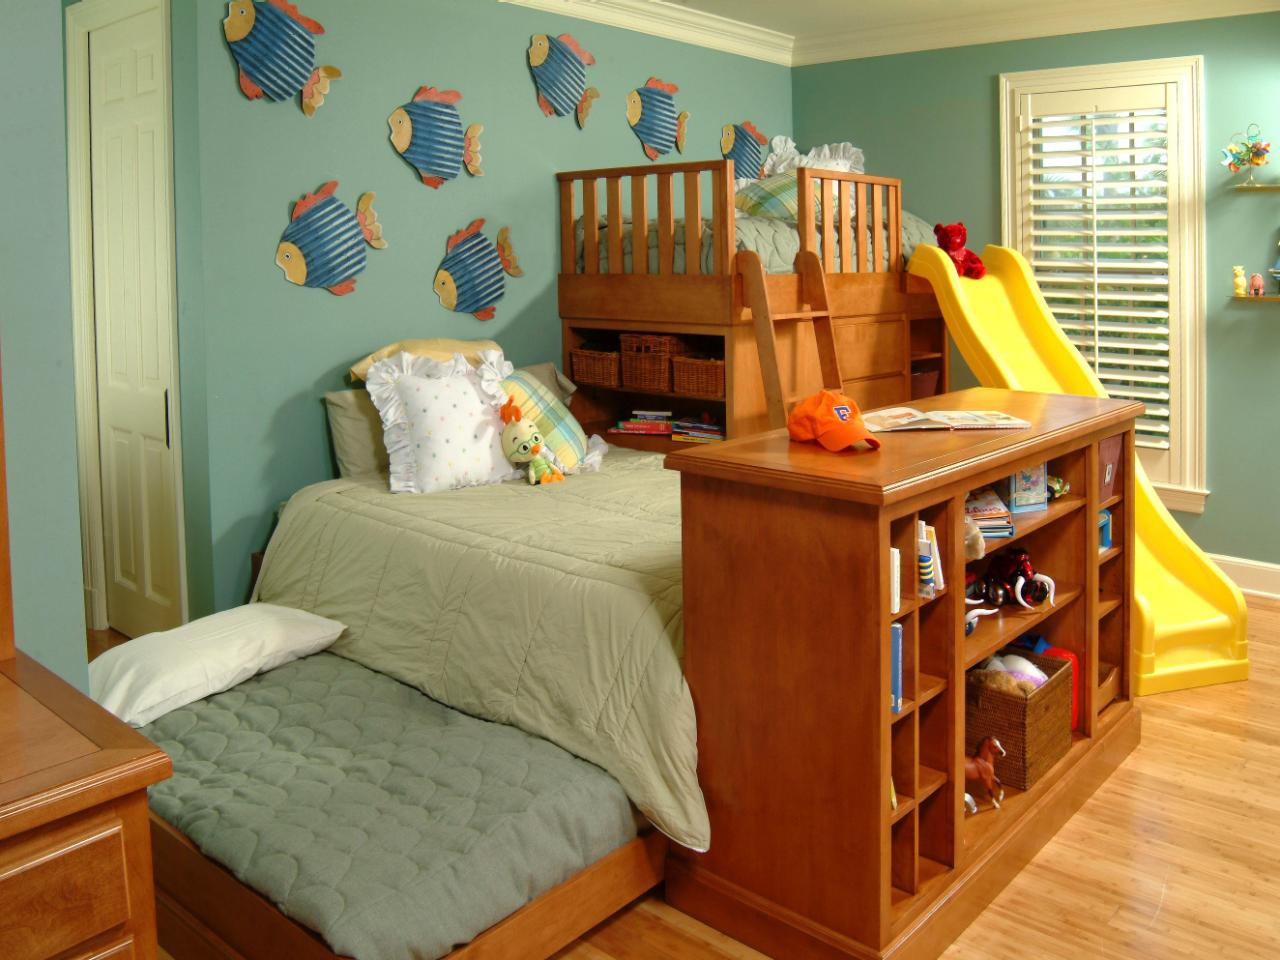 Unique Kid Rooms Get A Kids Room Storage For Your Little One Darbylanefurniture